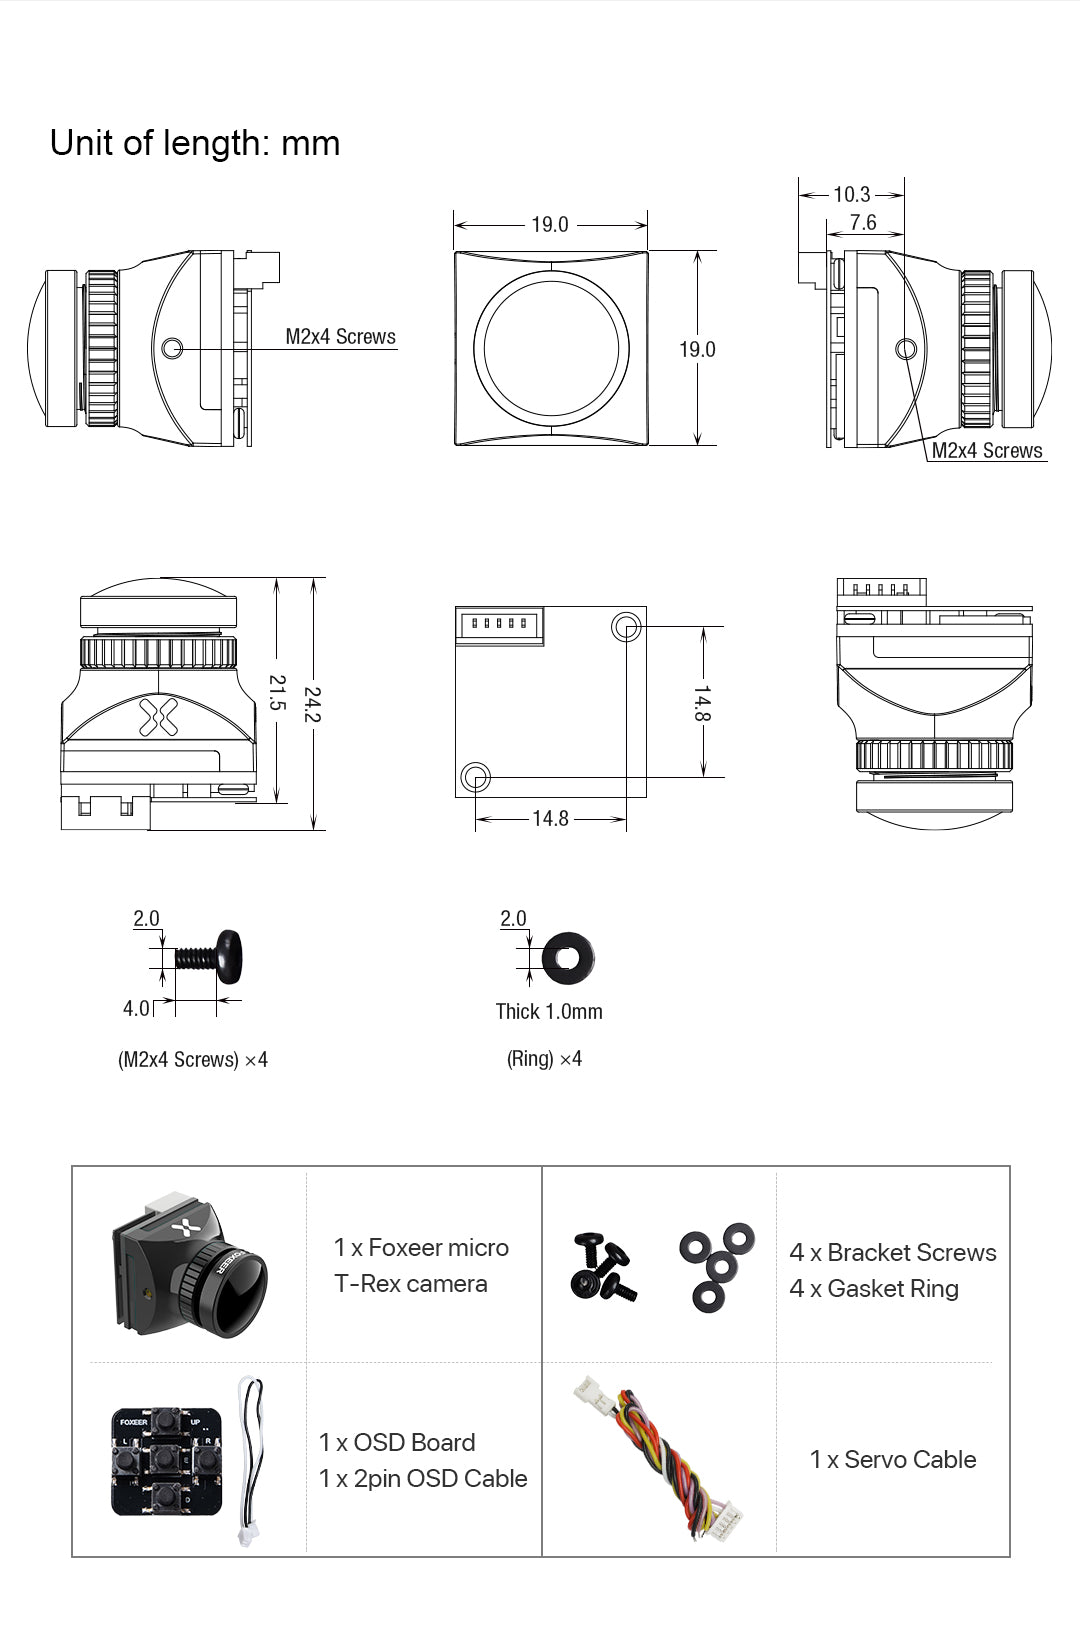 Dimensions and Accessories